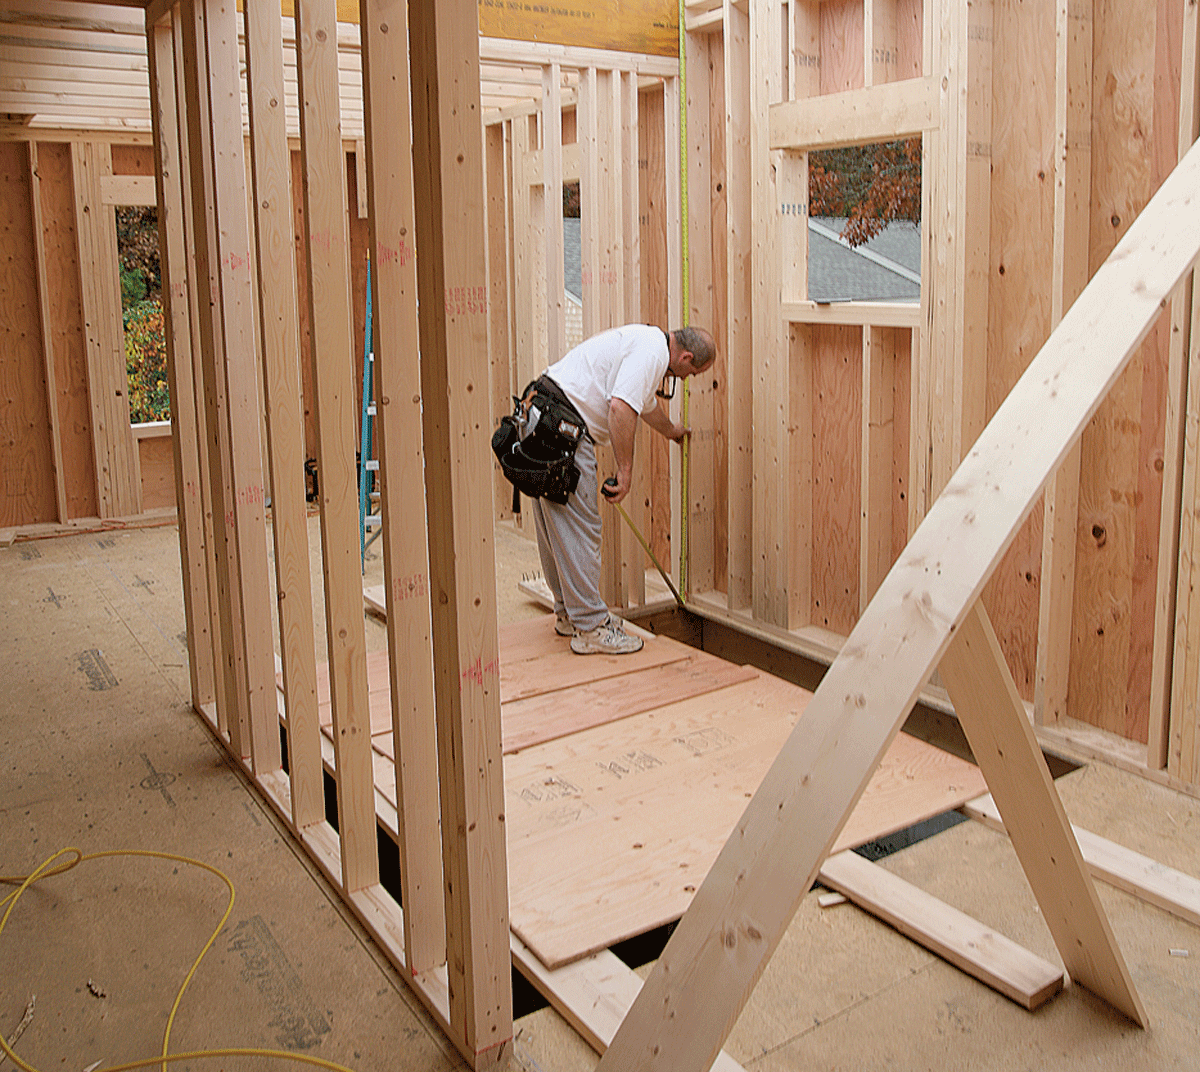 For new construction with perfectly level floors, the measurement for overall rise can be taken anywhere. Here, the measurement taken at the back of the chase also locates the height of the landing.